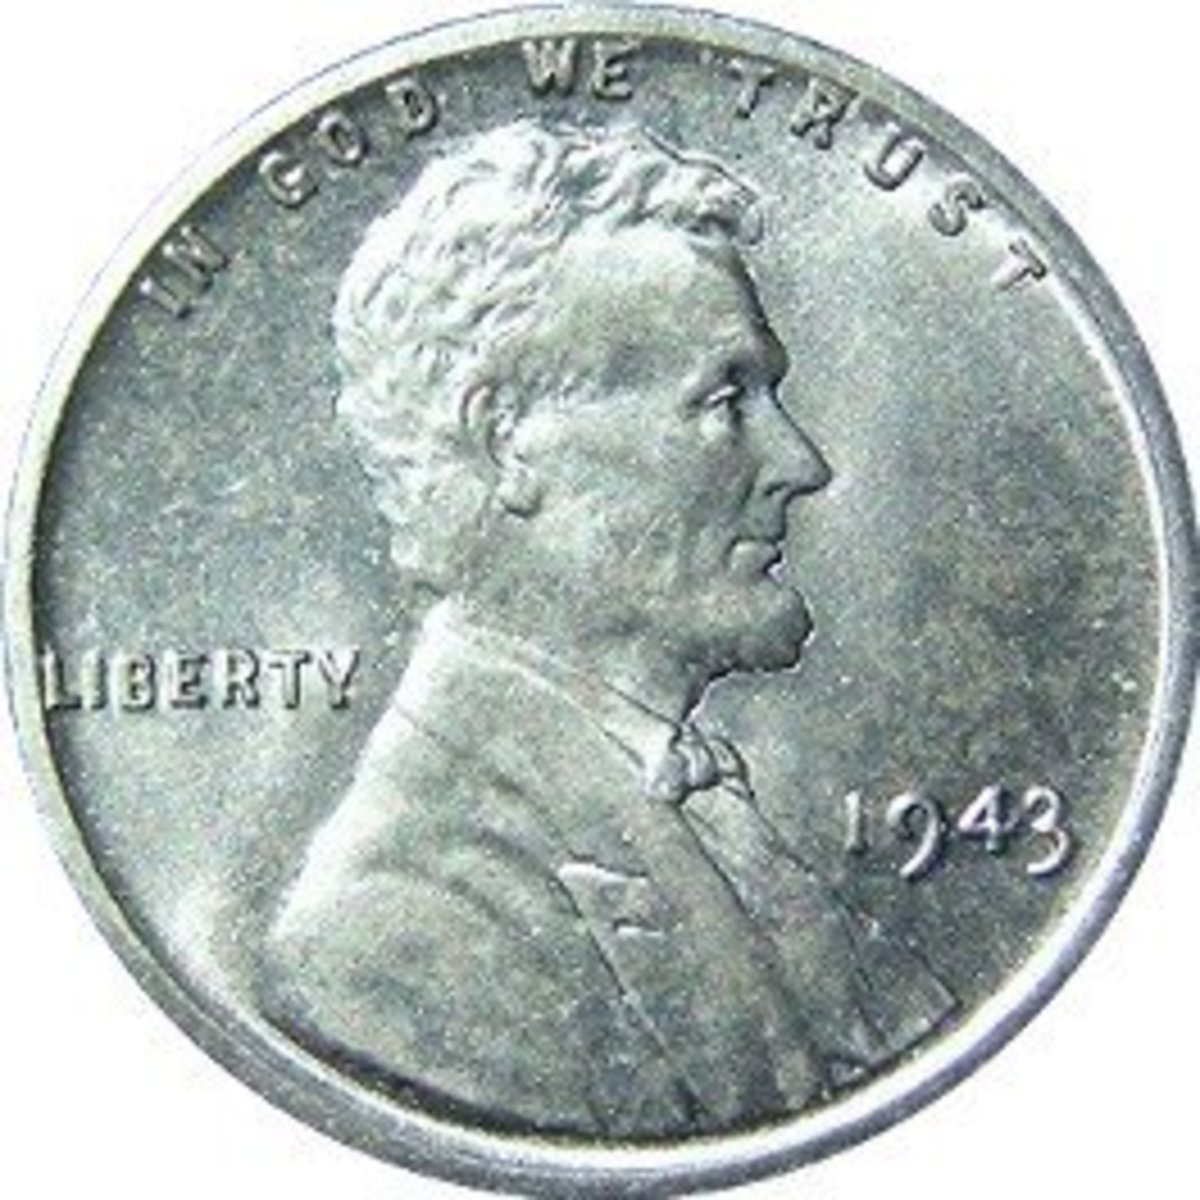 1943 steel penny, also known as a 'Steelie' (obverse and reverse).